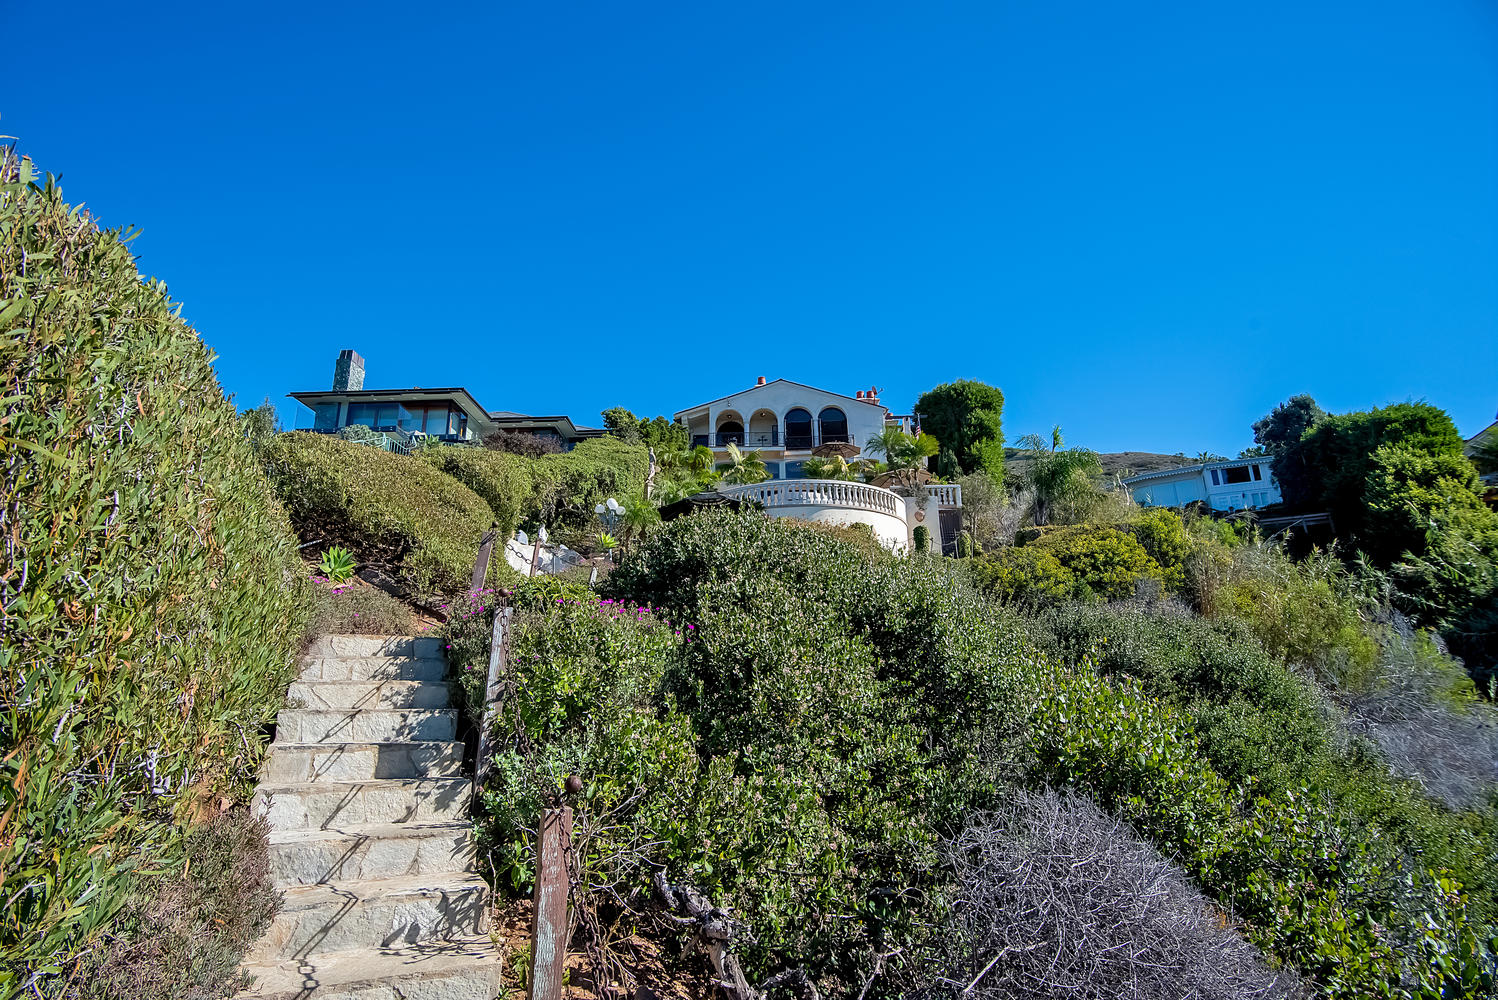 32101 Coast Hwy Laguna Beach-large-110-103-32101 Coast Hwy Laguna Beach-1499x1000-72dpi.jpg